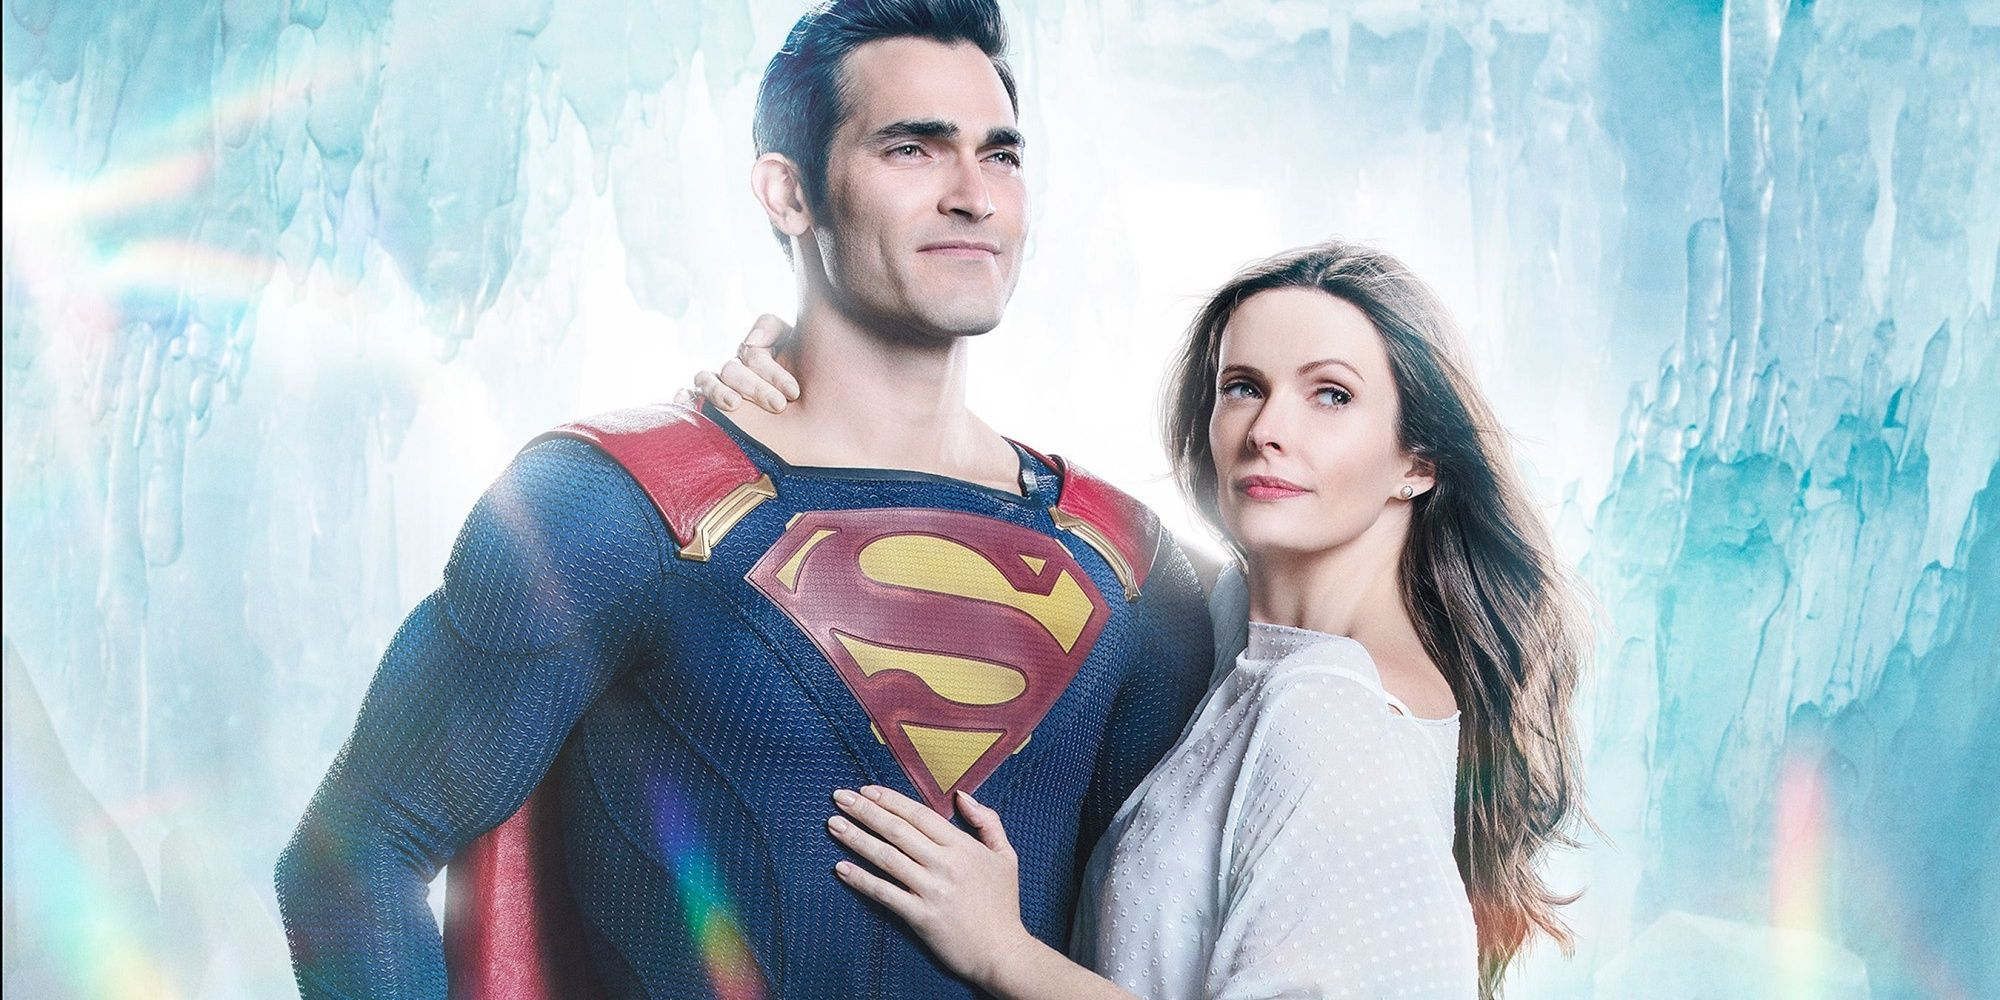 Elseworlds' Lois Lane Actor Shares BTS Photos from the Fortress of Solitude